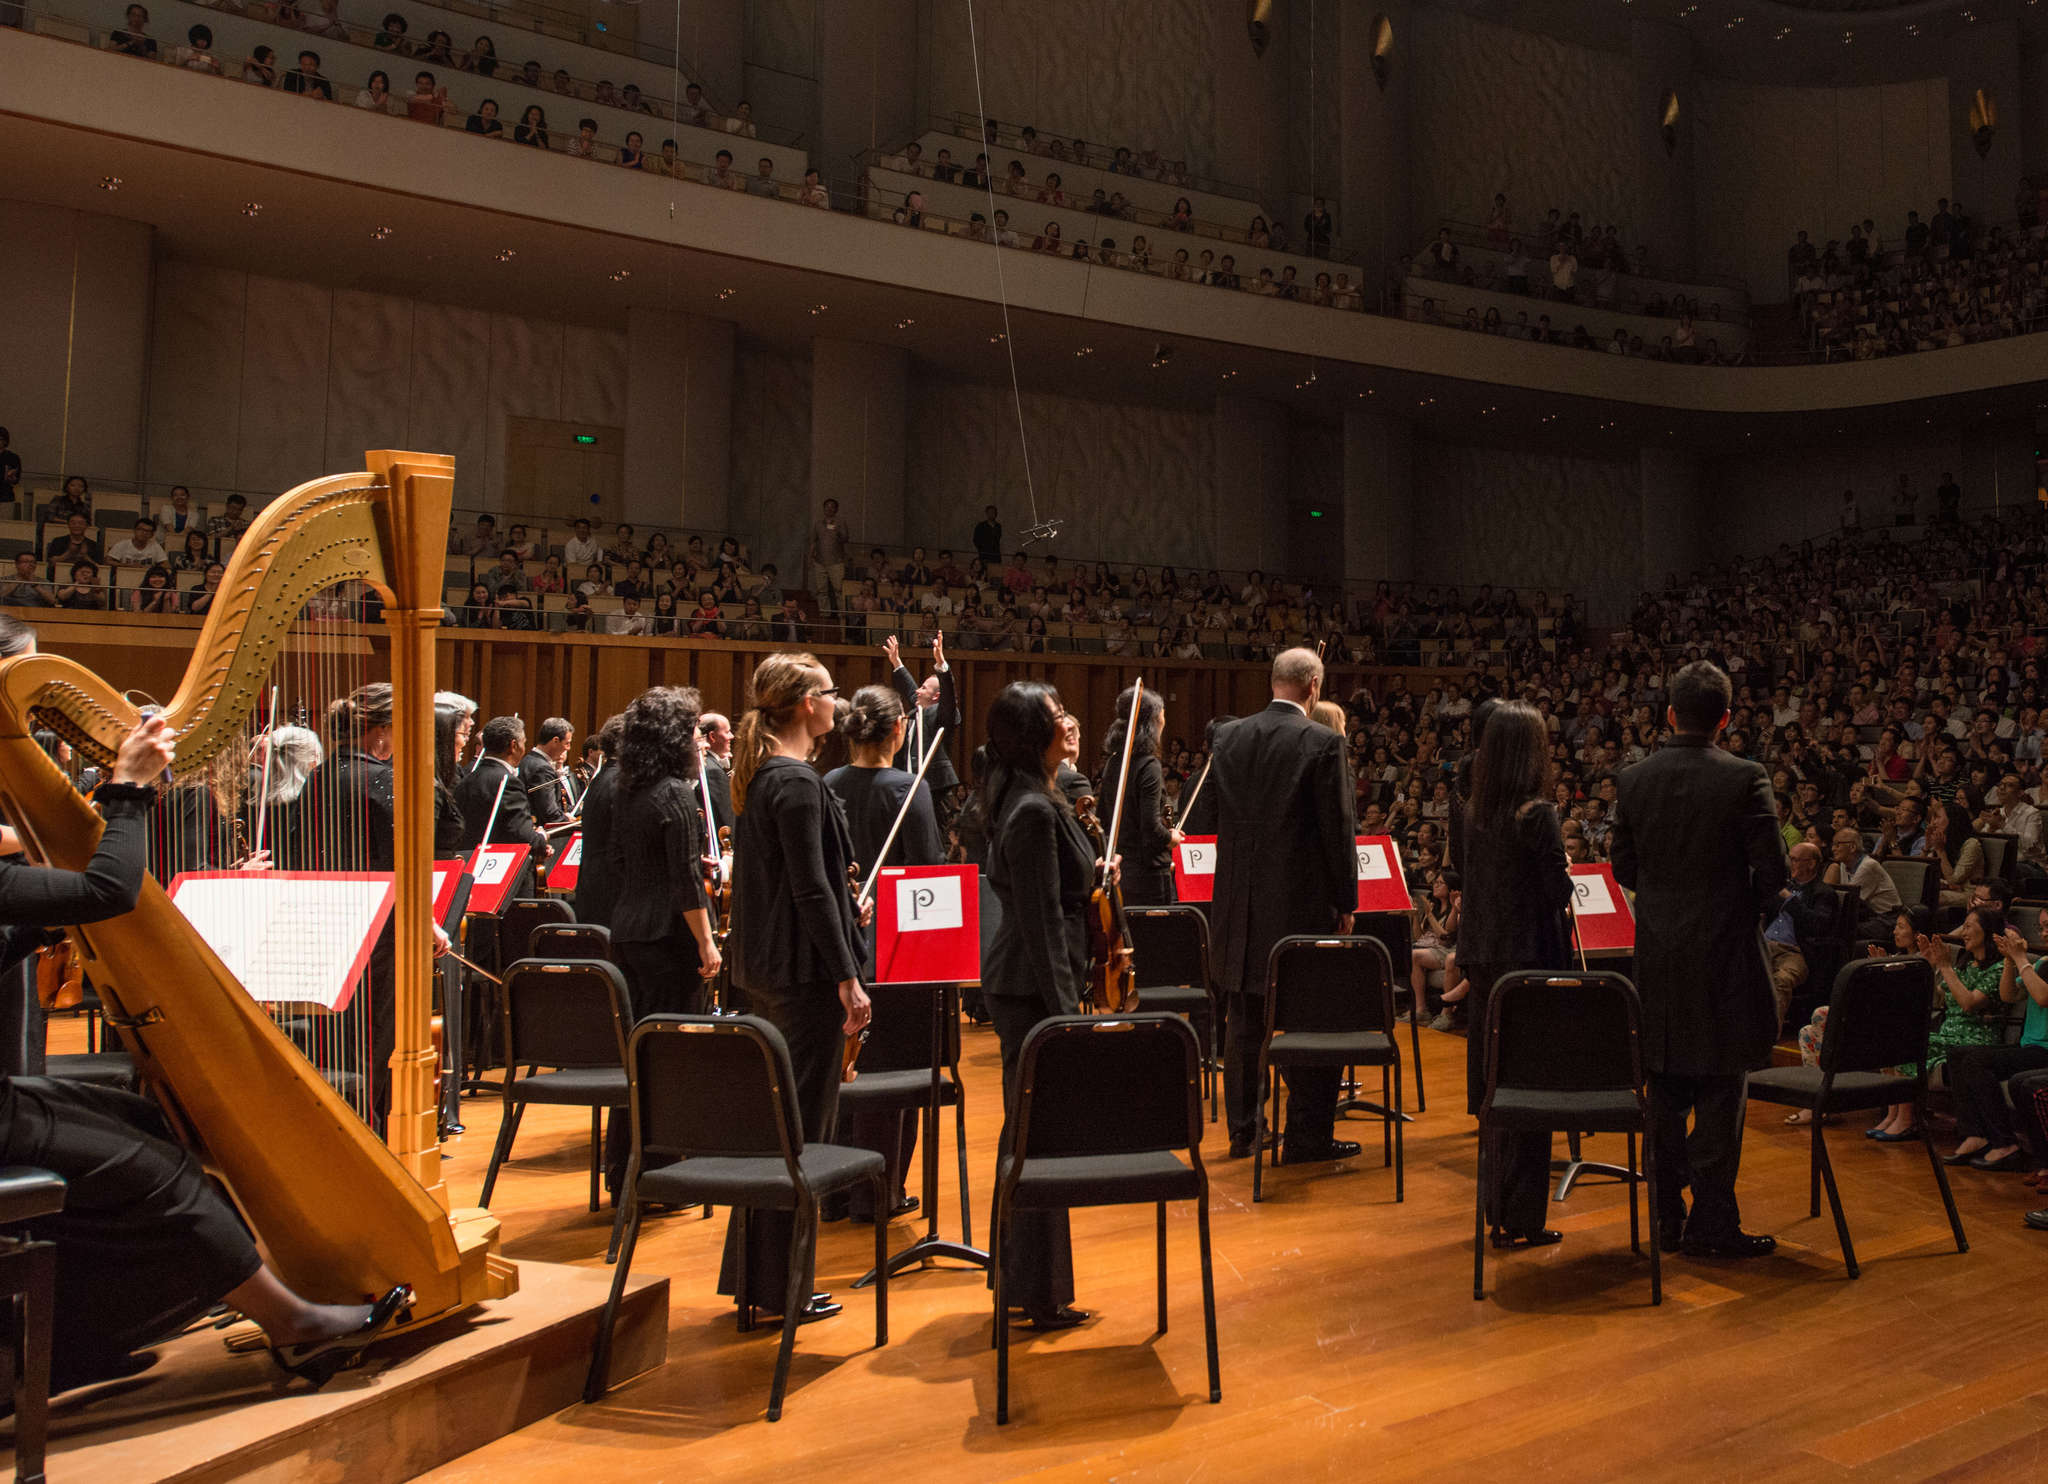 The Philadelphia Orchestra in Beijing on a previous tour of Asia. The orchestra´s 2016 tour includes stops in Hong Kong, Macau, Shanghai, Beijing, and finishes with five concert dates in Japan.